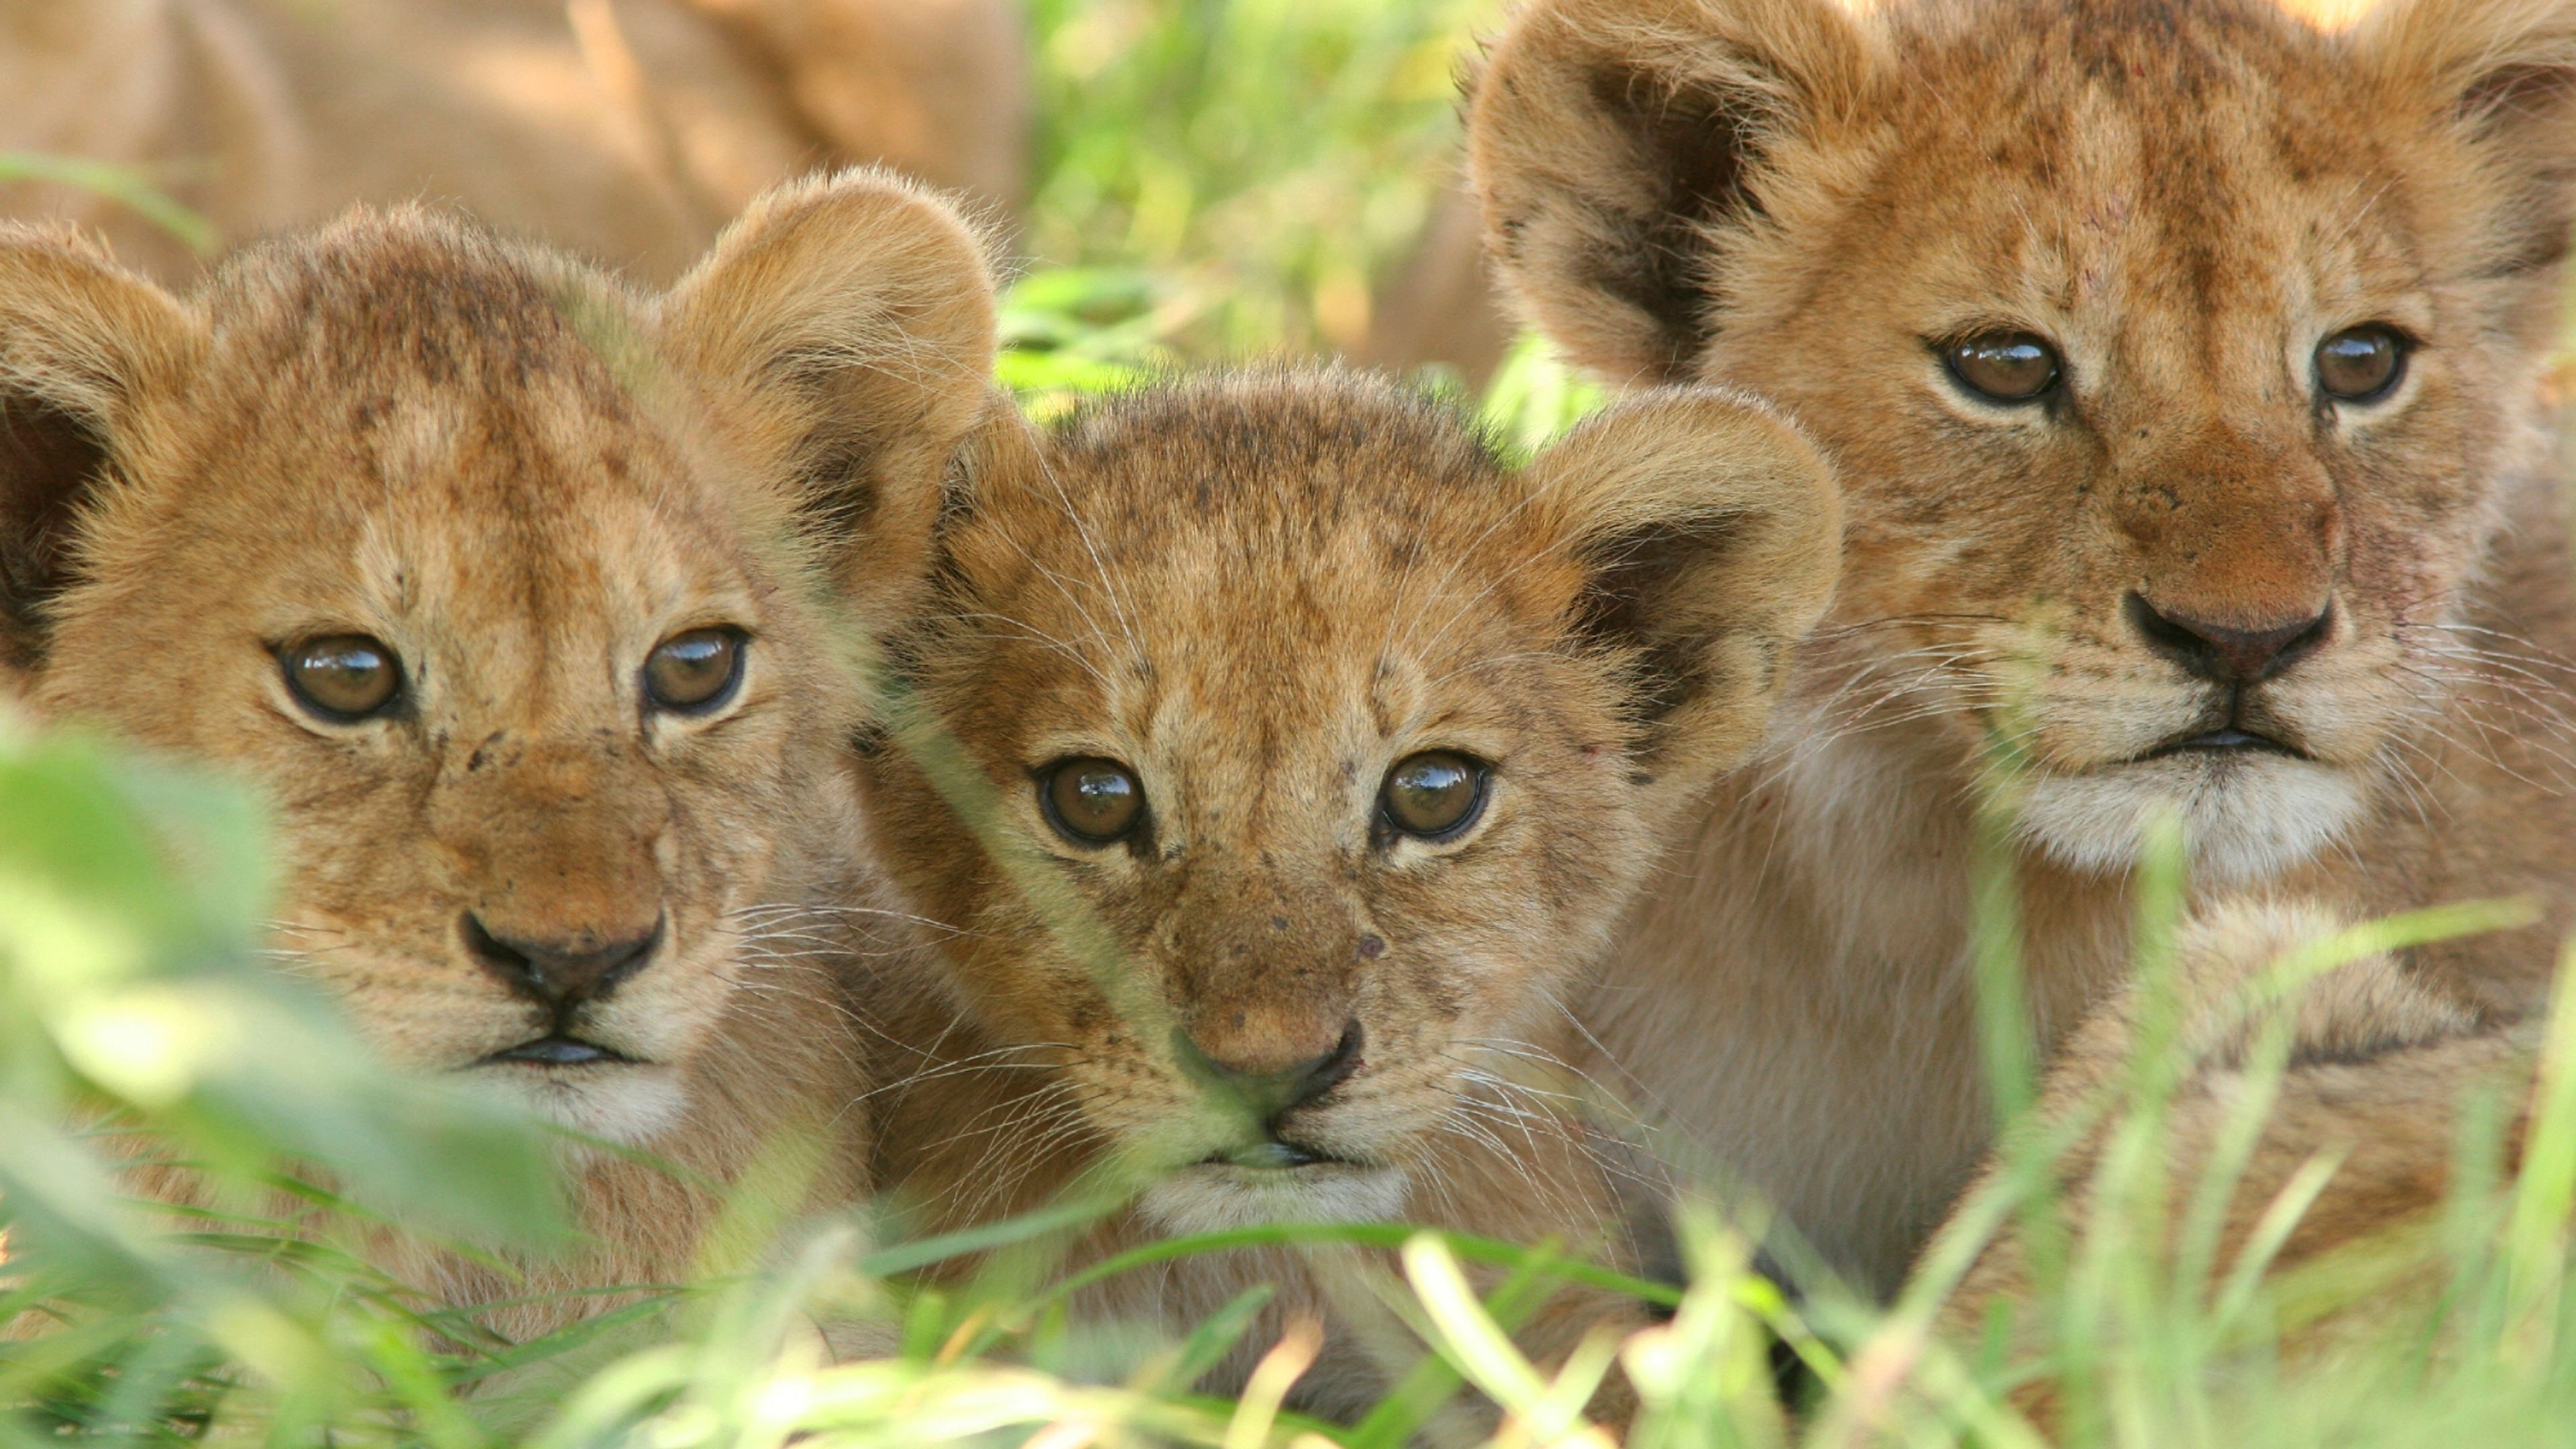 3840x2160 Lion Cub Baby Big Cat Wallpaper